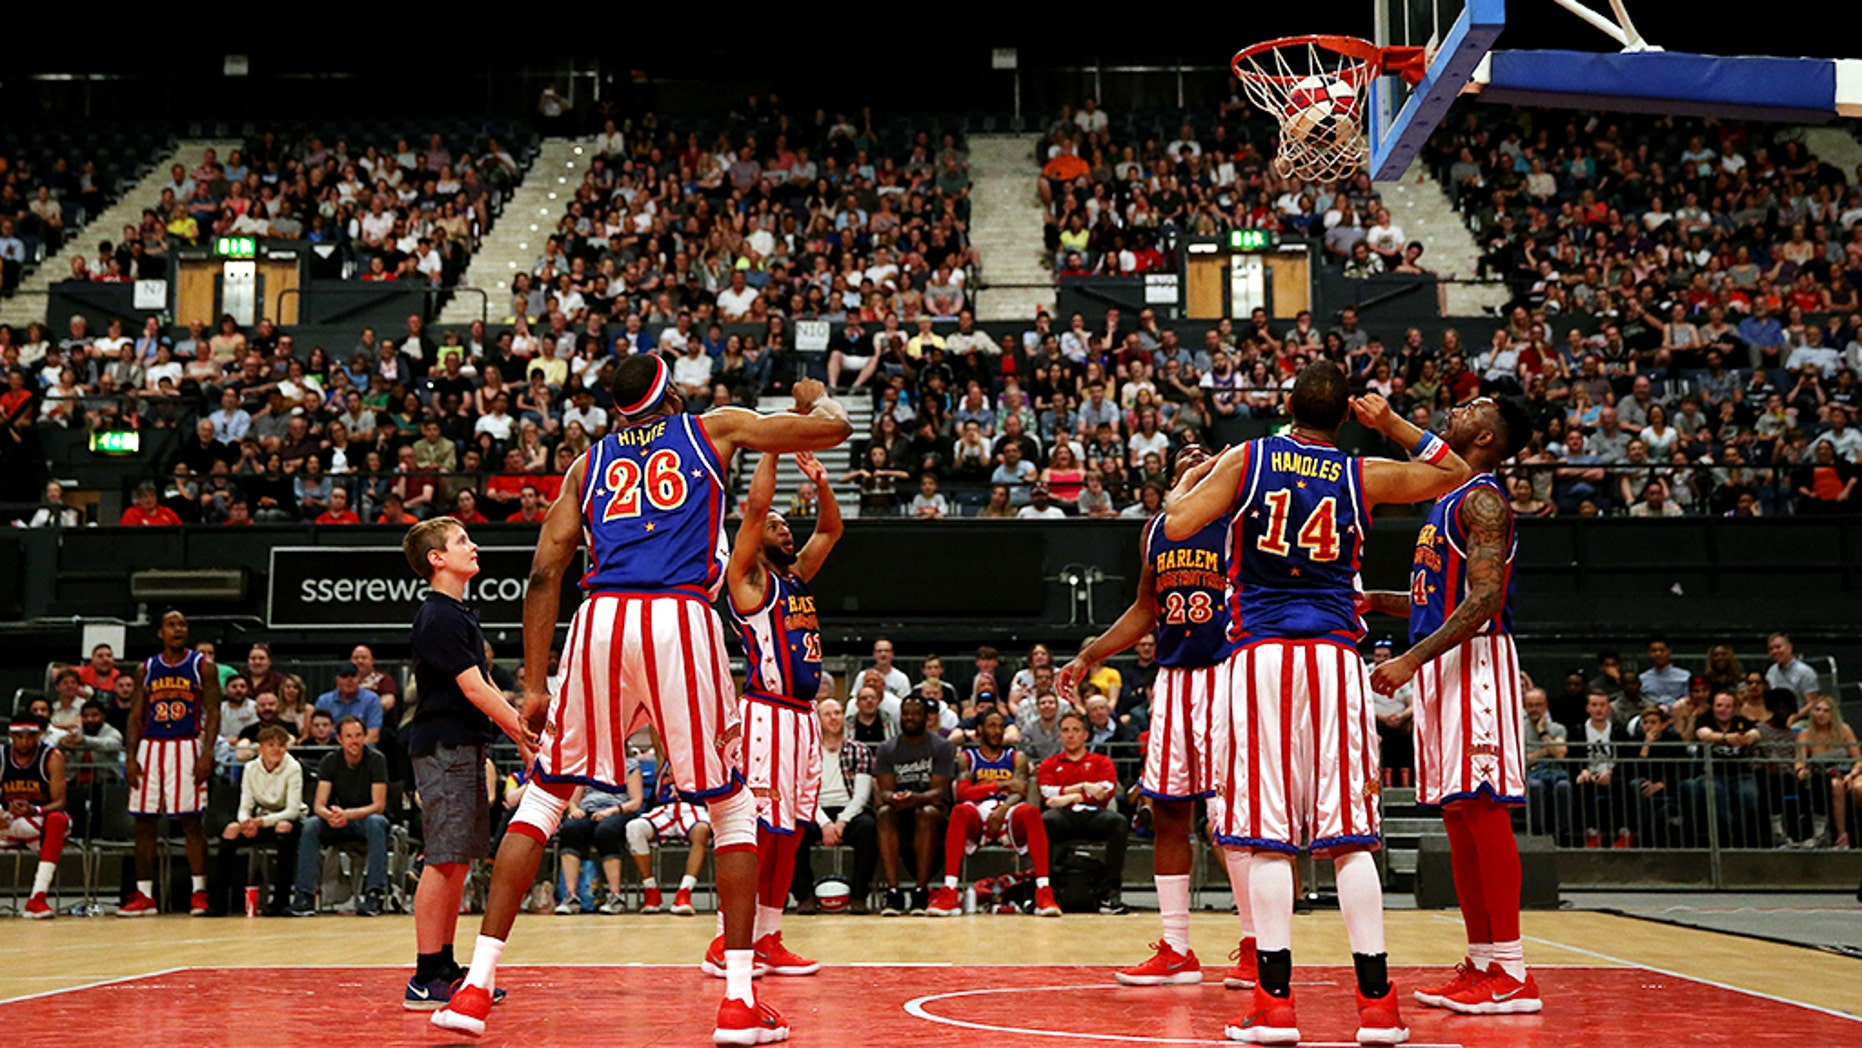 A spectator gets involved during The Original Harlem Globetrotters Tour at The SSE Arena, London. (Photo by Steven Paston/PA Images via Getty Images)